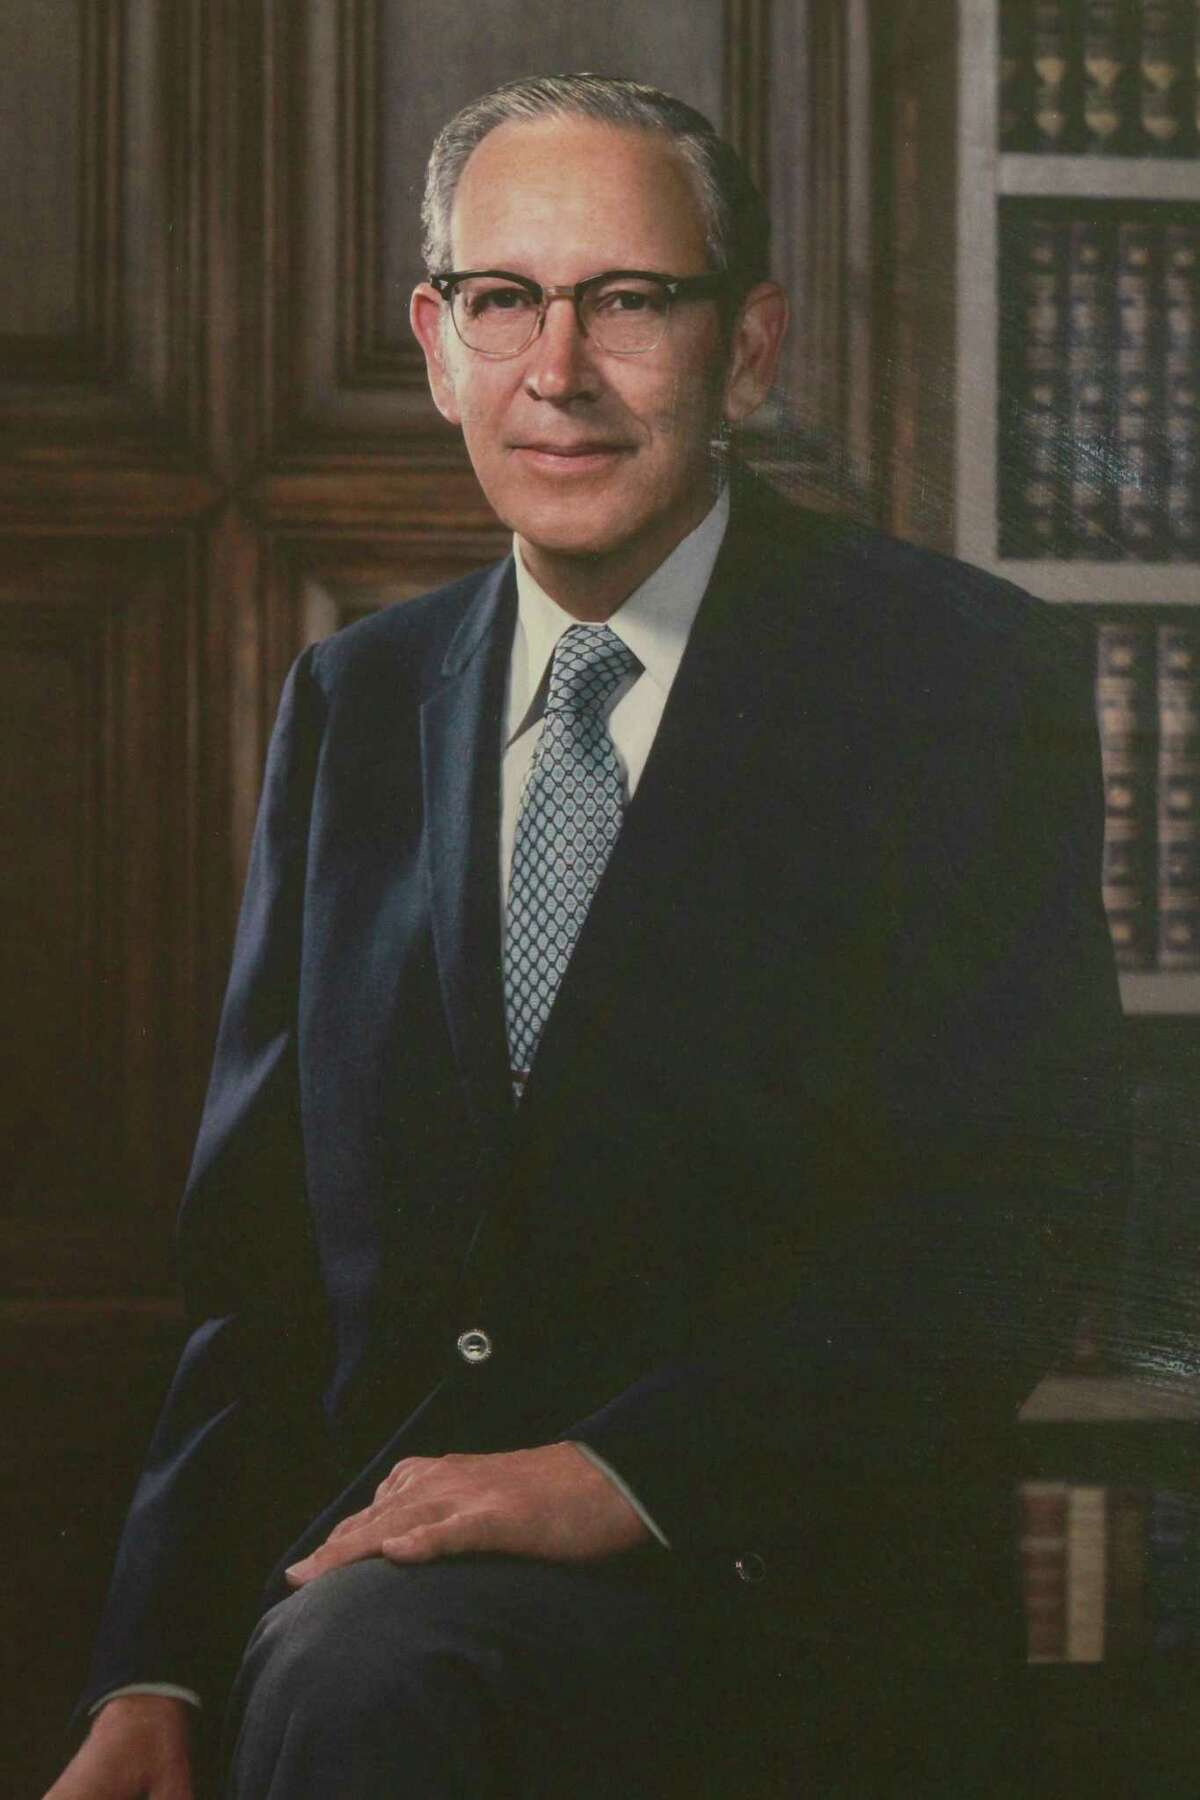 Dr. Thomas Cronin, shown in this portrait displayed at St. Joseph Medical Center in Houston, brought the idea for the first modern breast implants to Dow Corning in 1961.